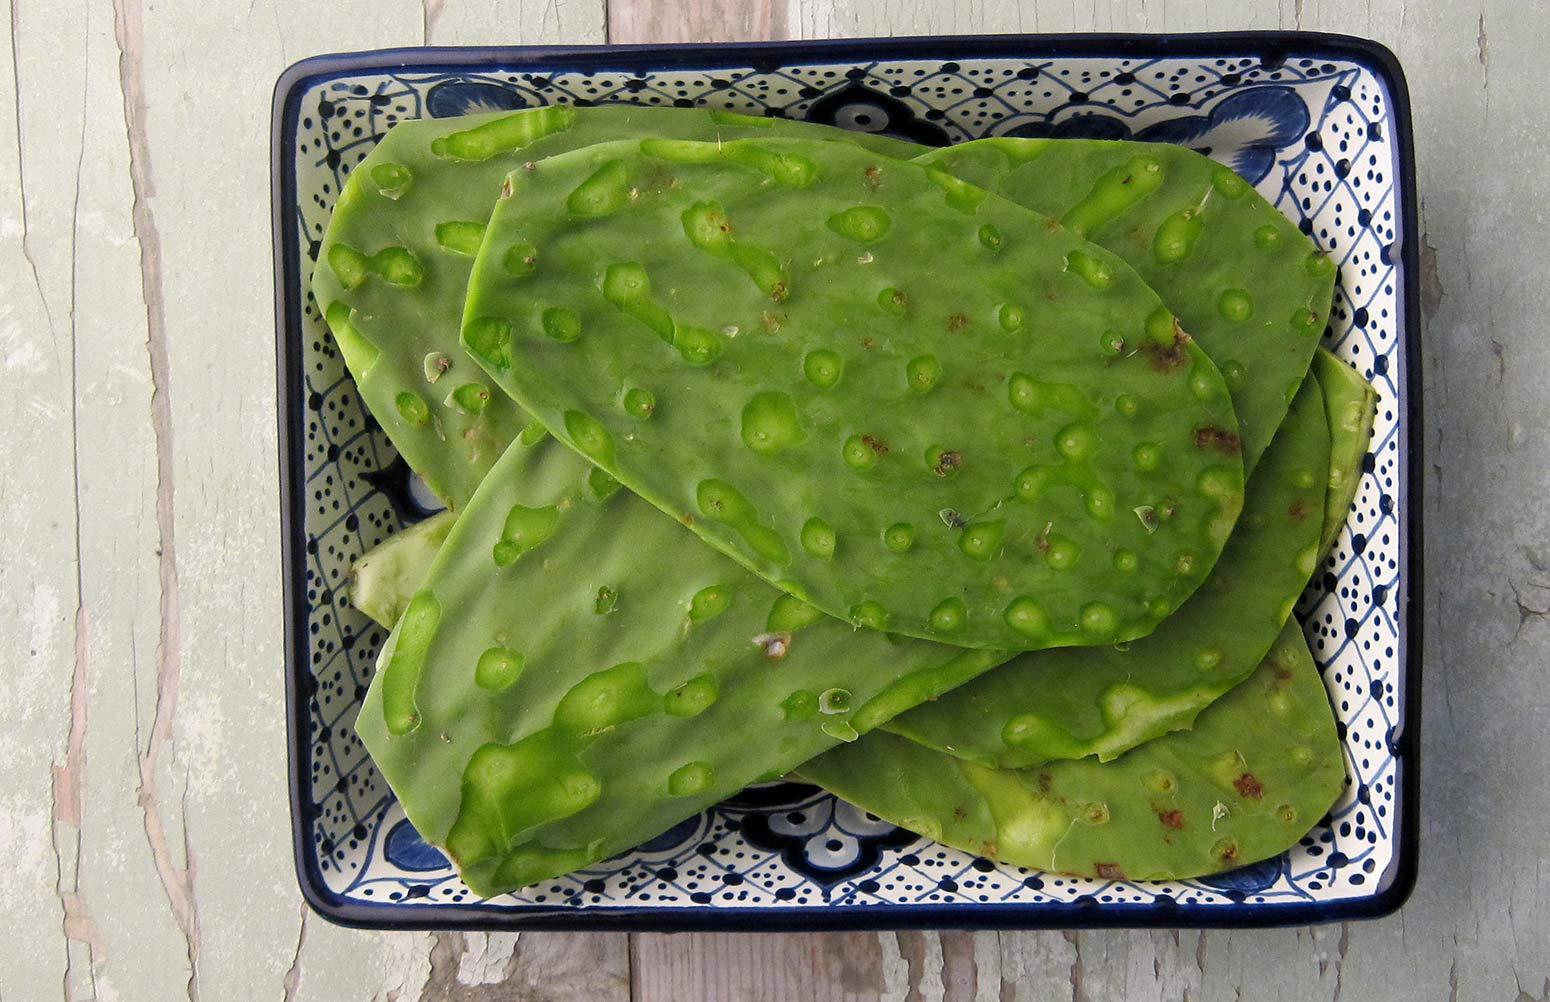 How to cook nopales